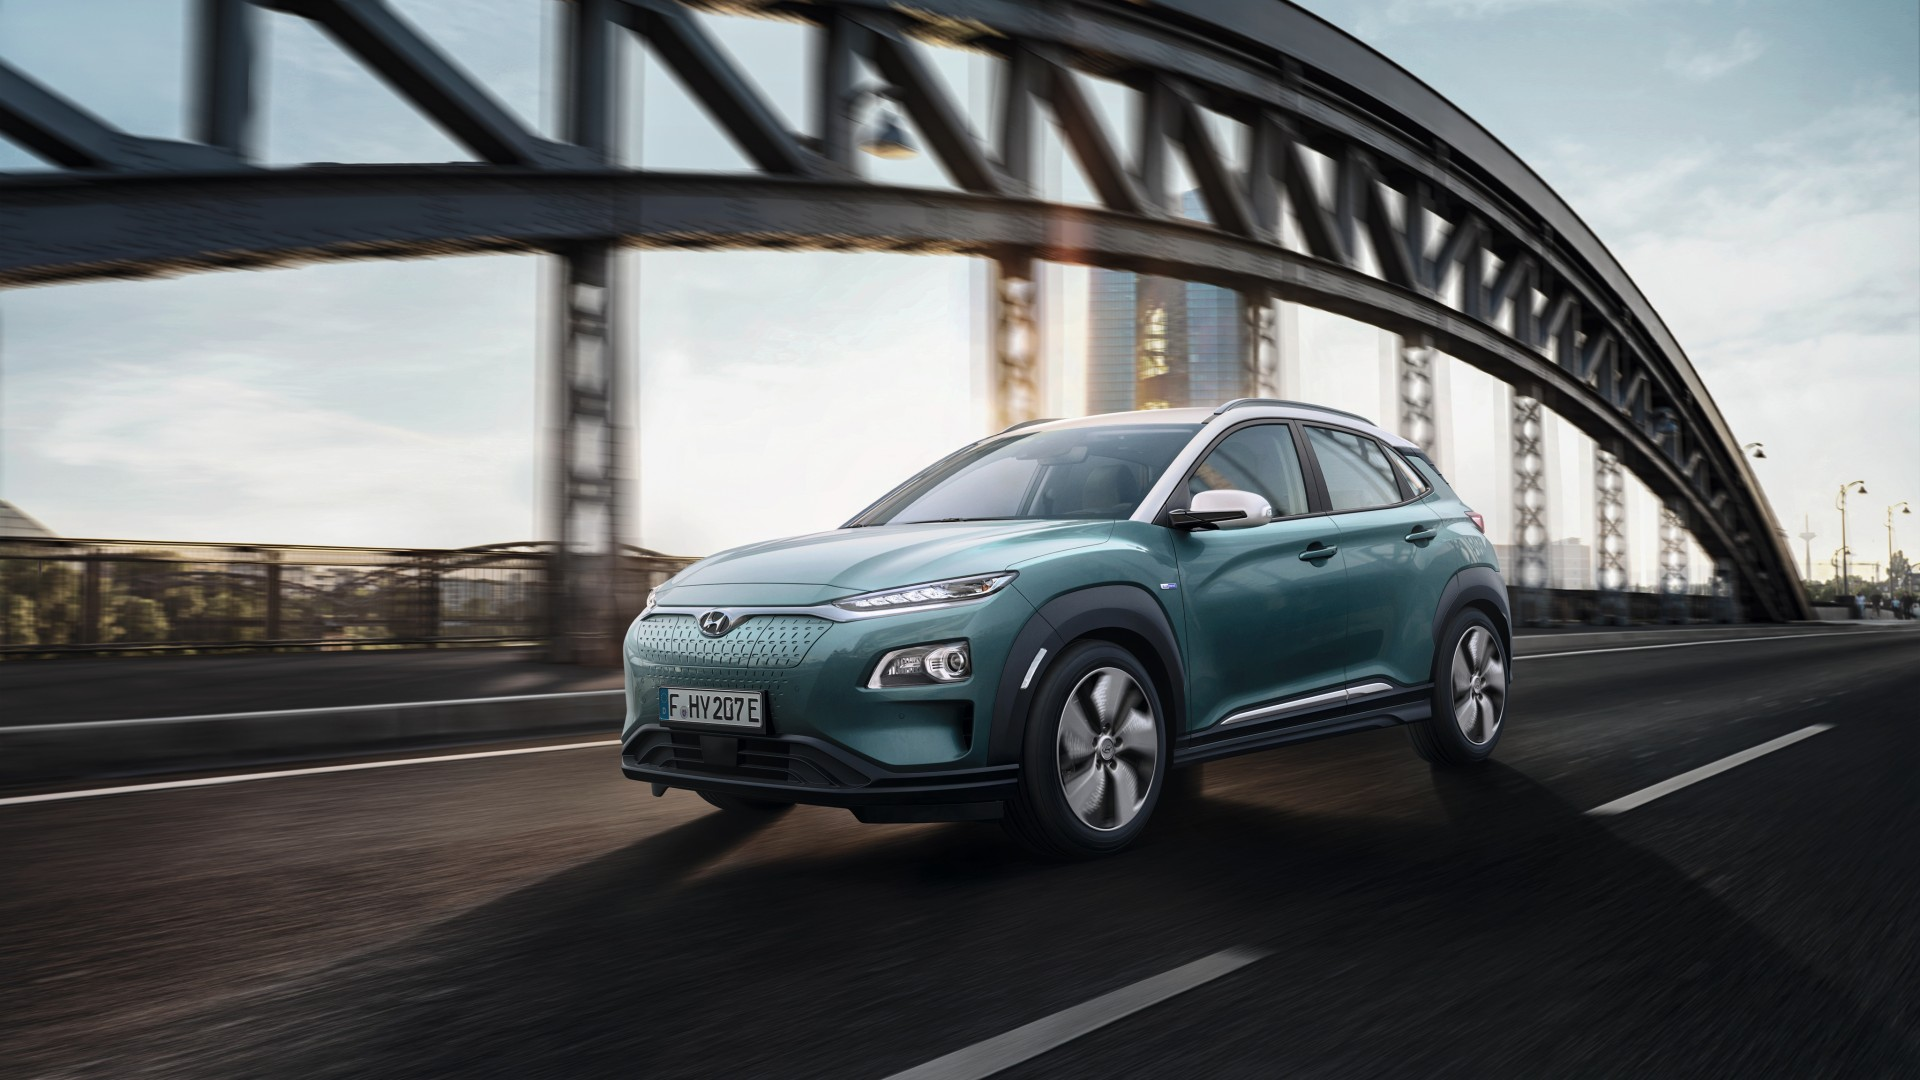 2018 Hyundai Kona Electric 4K Wallpaper HD Car